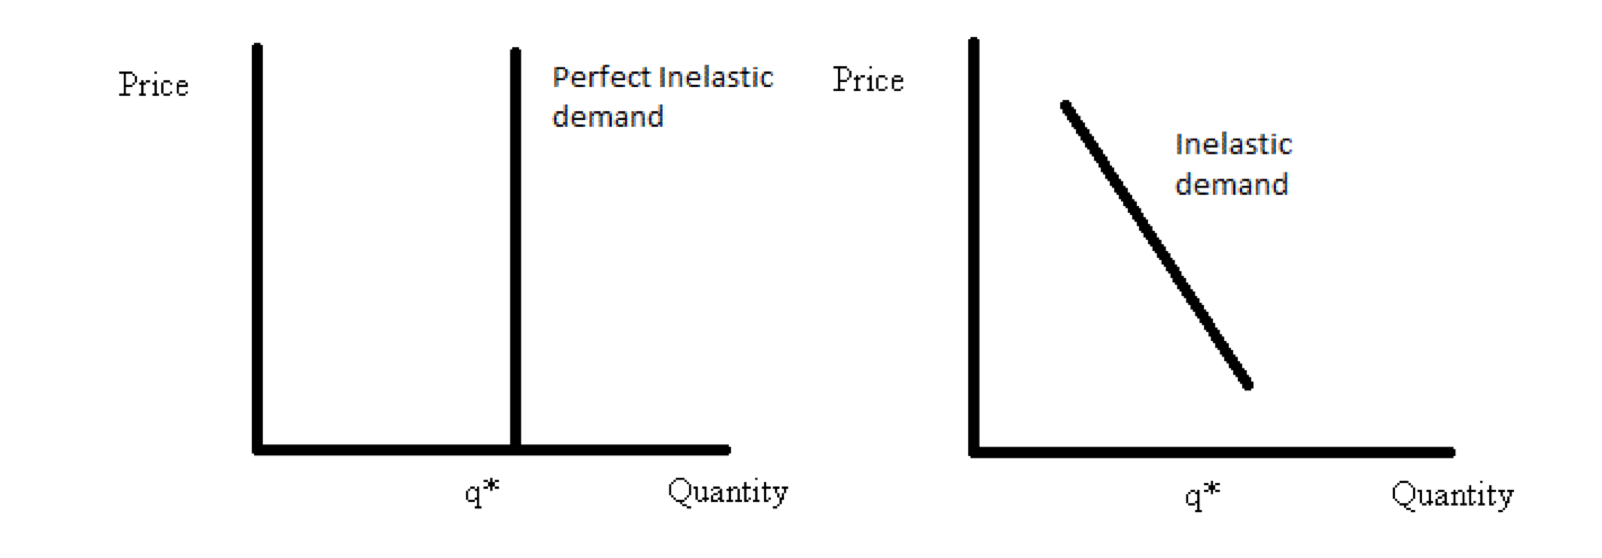 Inelastic diagram gallery diagram design ideas inelastic demand how prices impact demand definition diagrams demand elasticity and inelastic demand pooptronica gallery pooptronica Choice Image